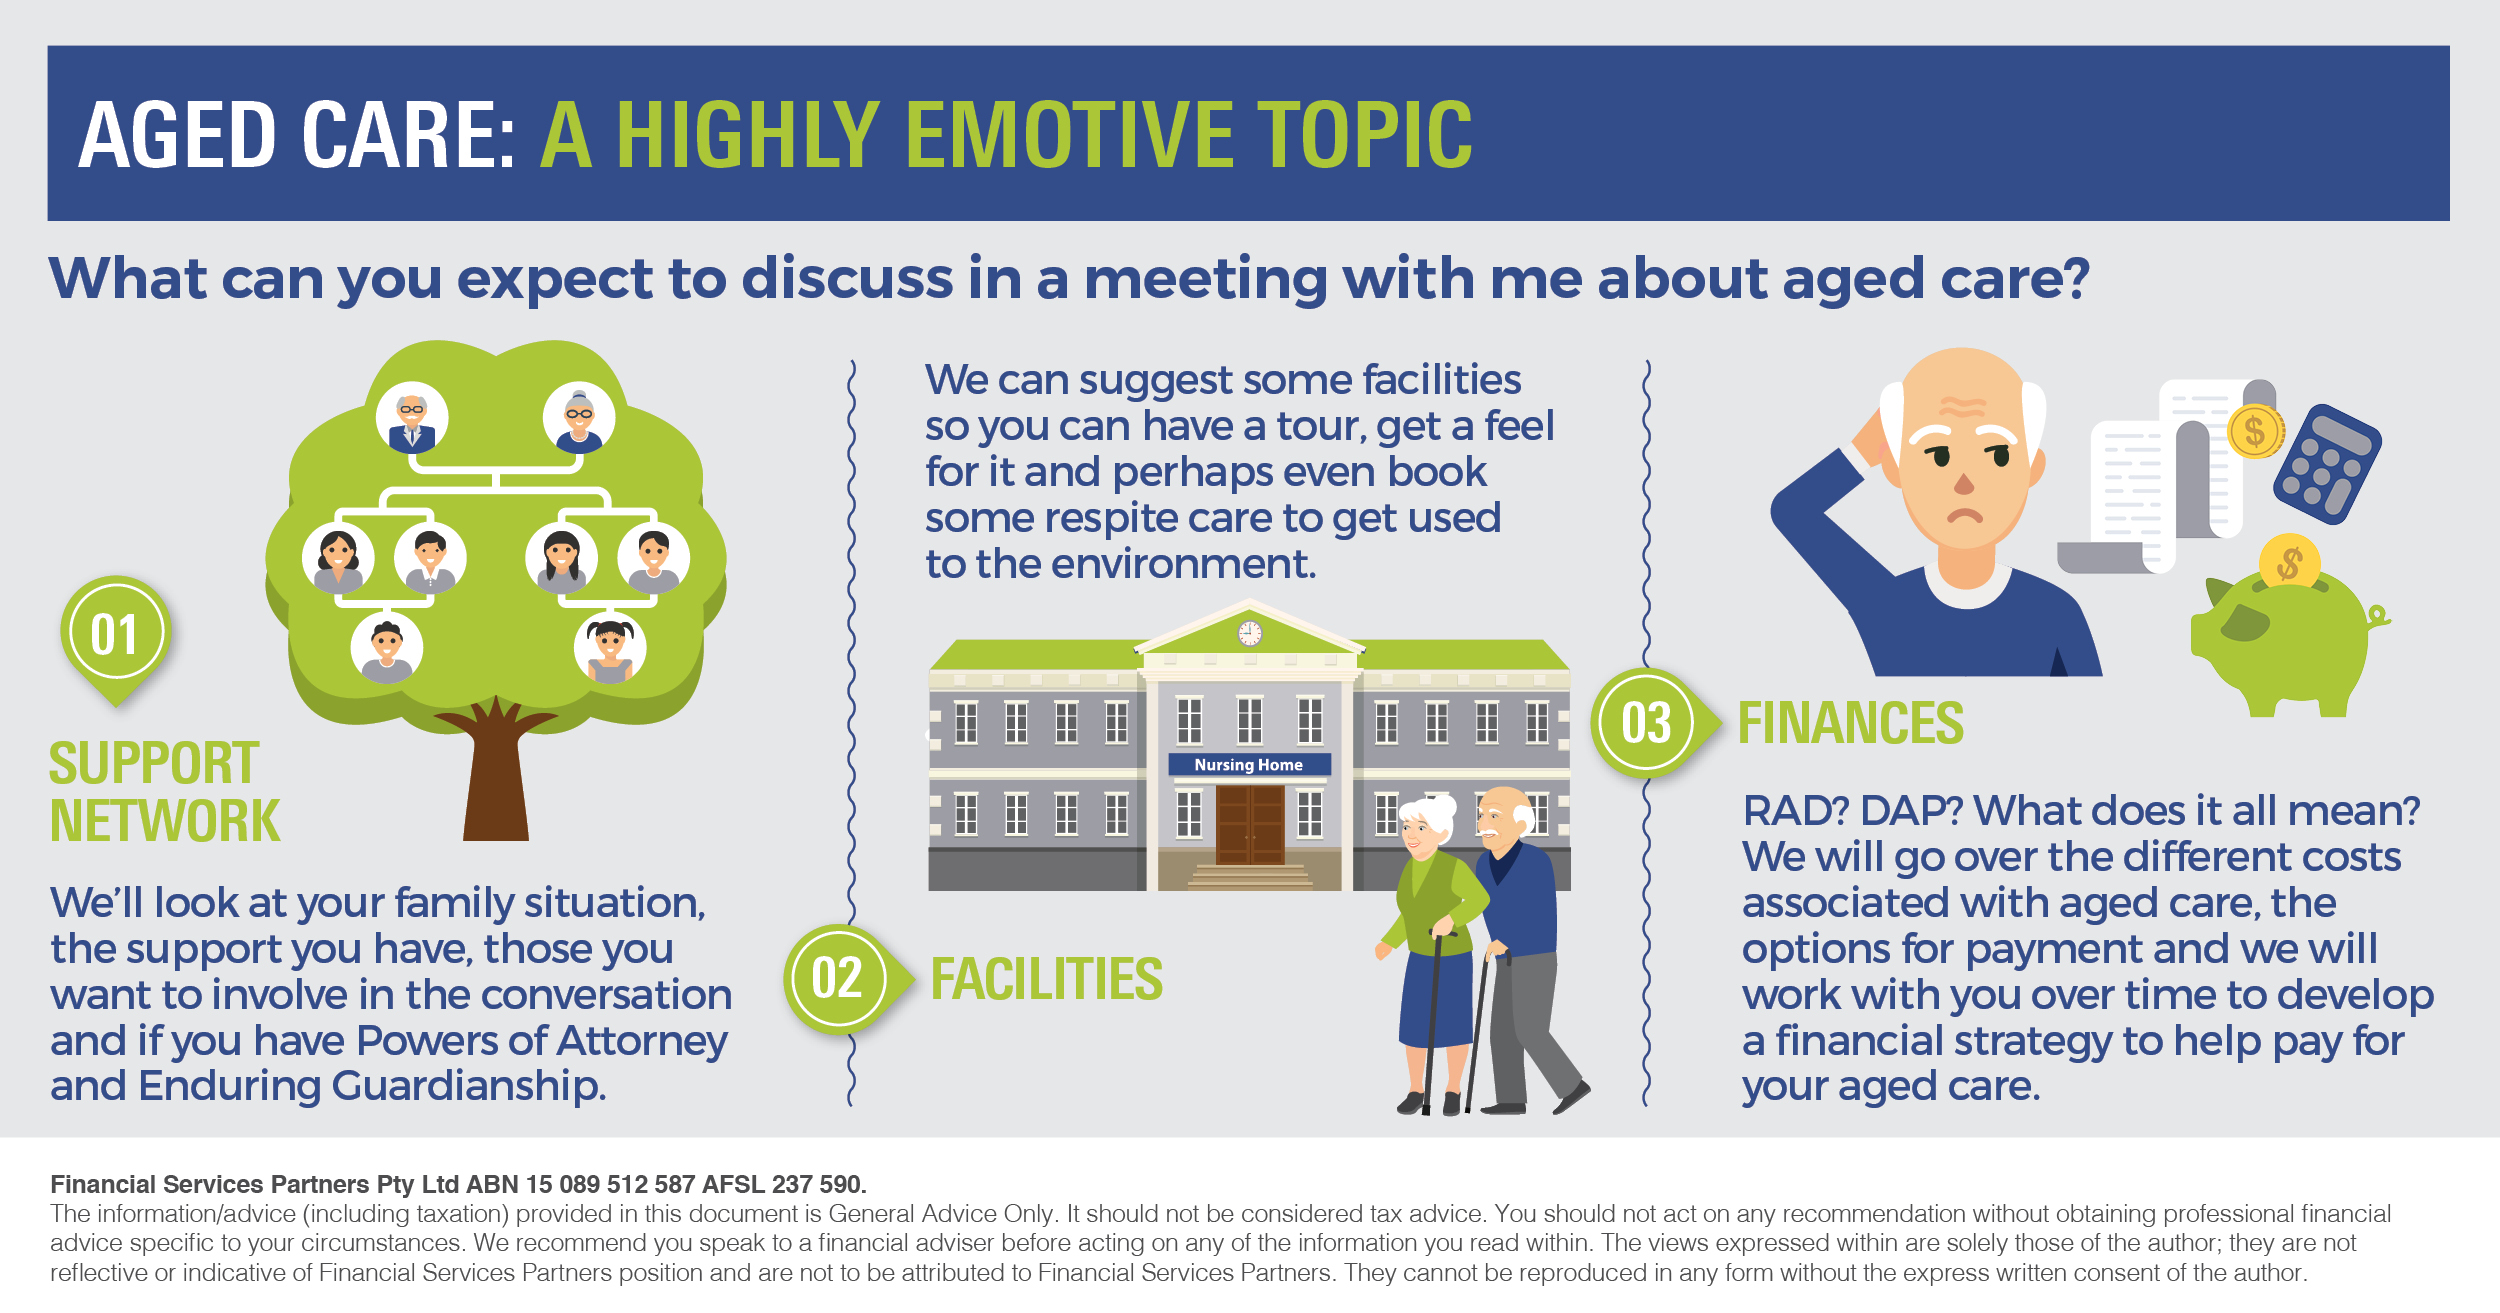 infographic_aged care_a highly emotive topic_v2